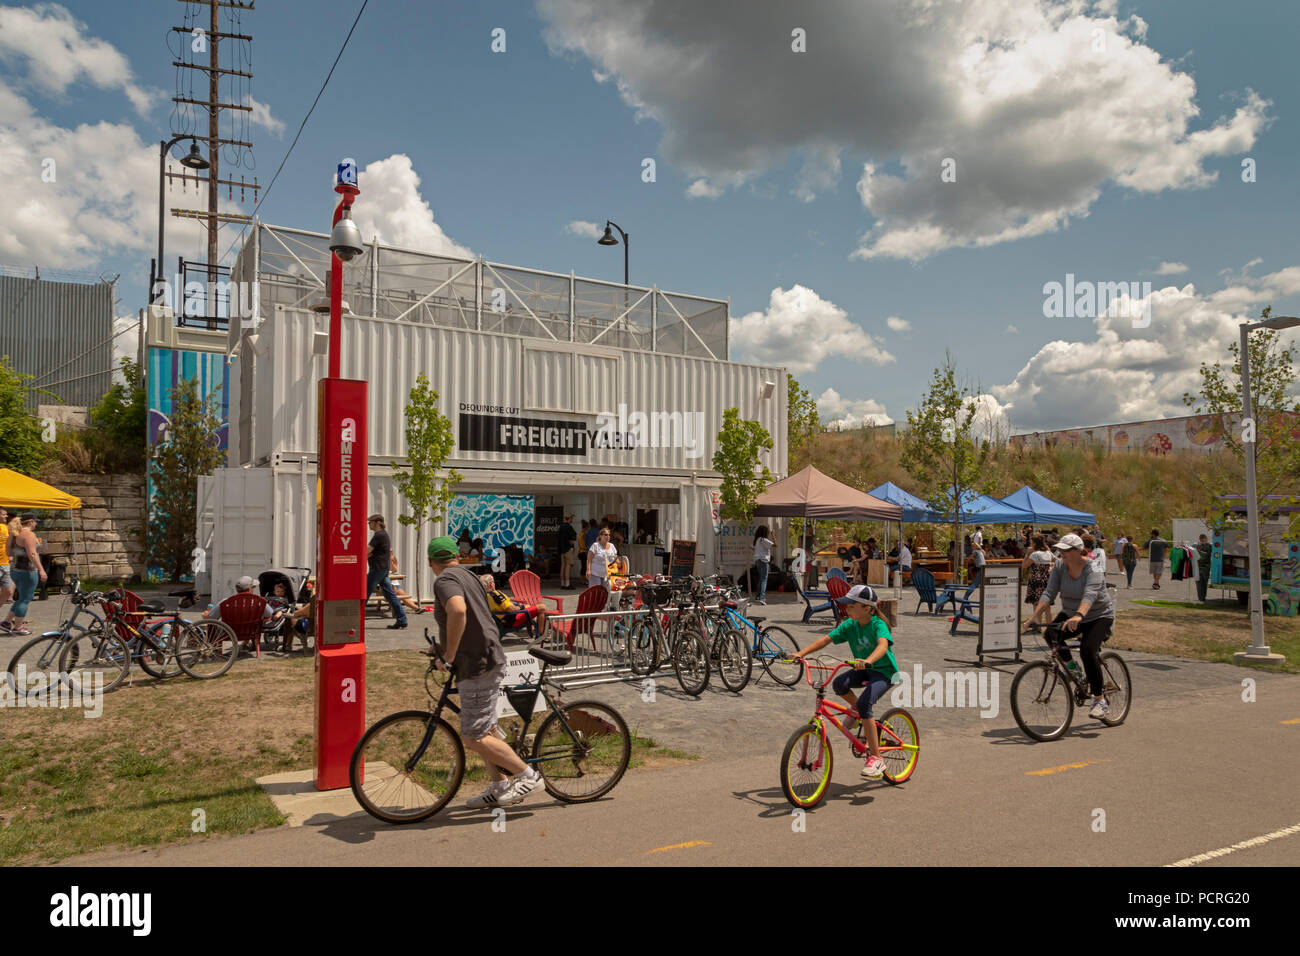 Detroit, Michigan - The Freight Yard, a beer and wine garden with shopping and food trucks constructed from shipping containers. The Freight Yard is a Stock Photo